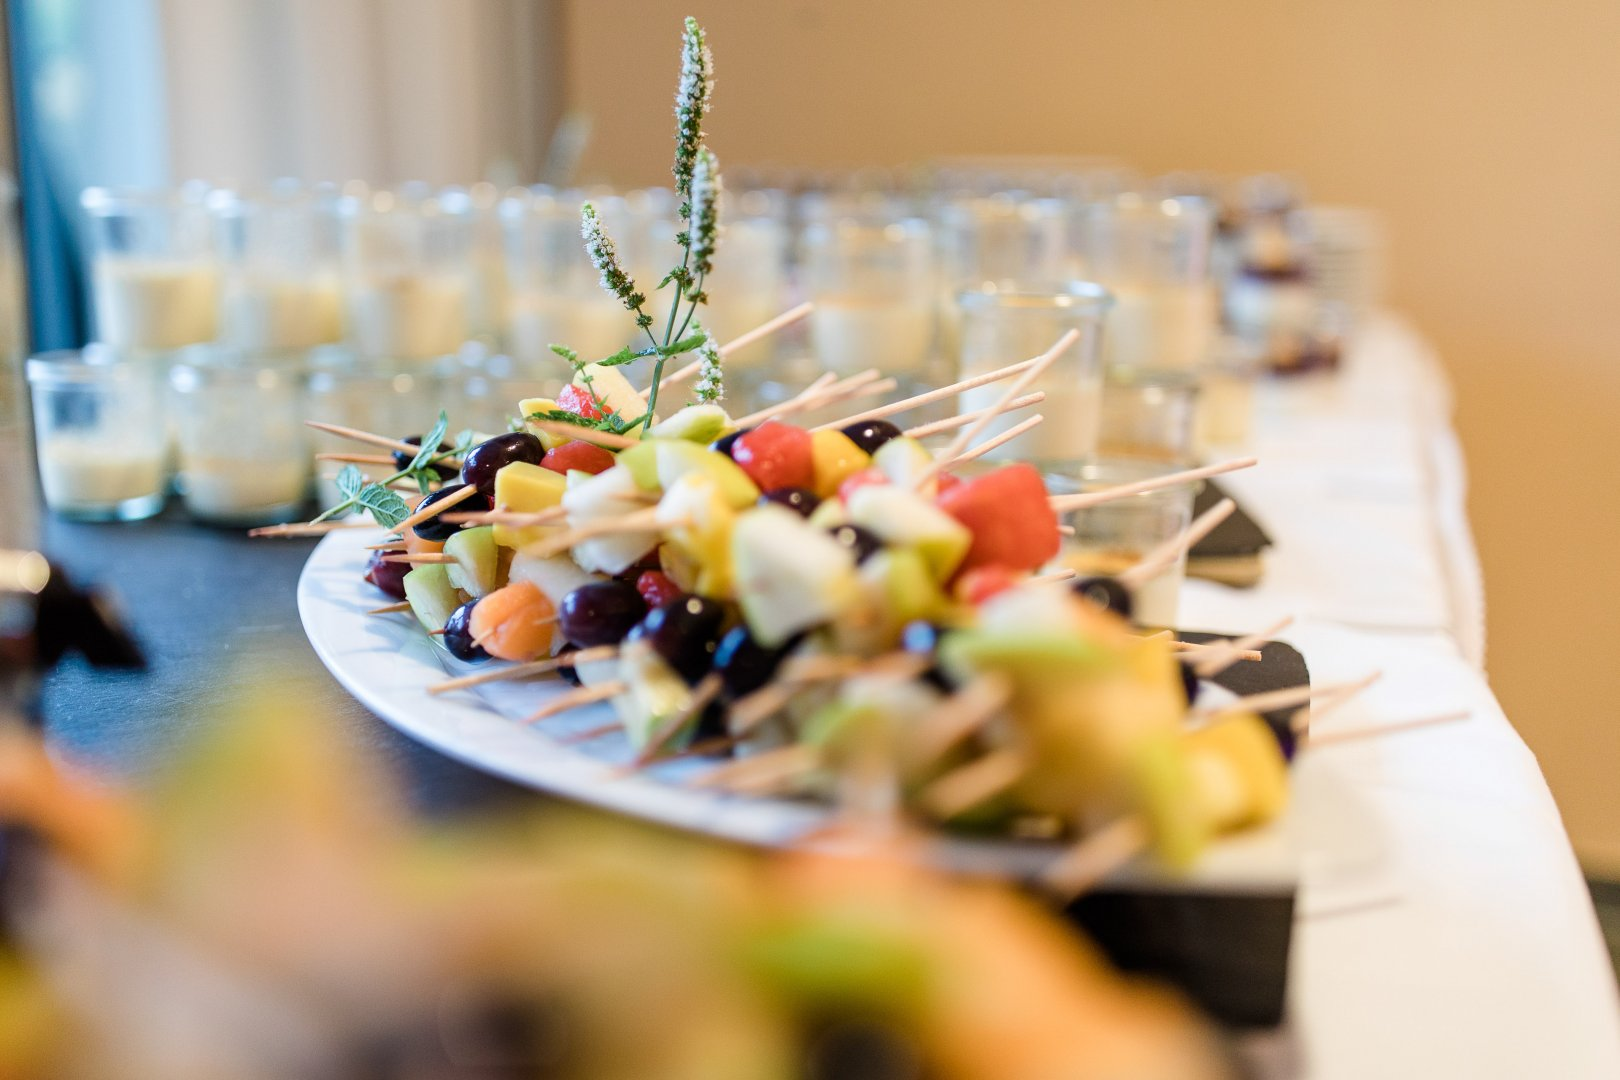 Food Dish Brunch Cuisine Meal À la carte food Salad Finger food Ingredient Lunch appetizer Restaurant Canapé Dinner Recipe Produce Table Hors d'oeuvre Culinary art Party Supper Rehearsal dinner